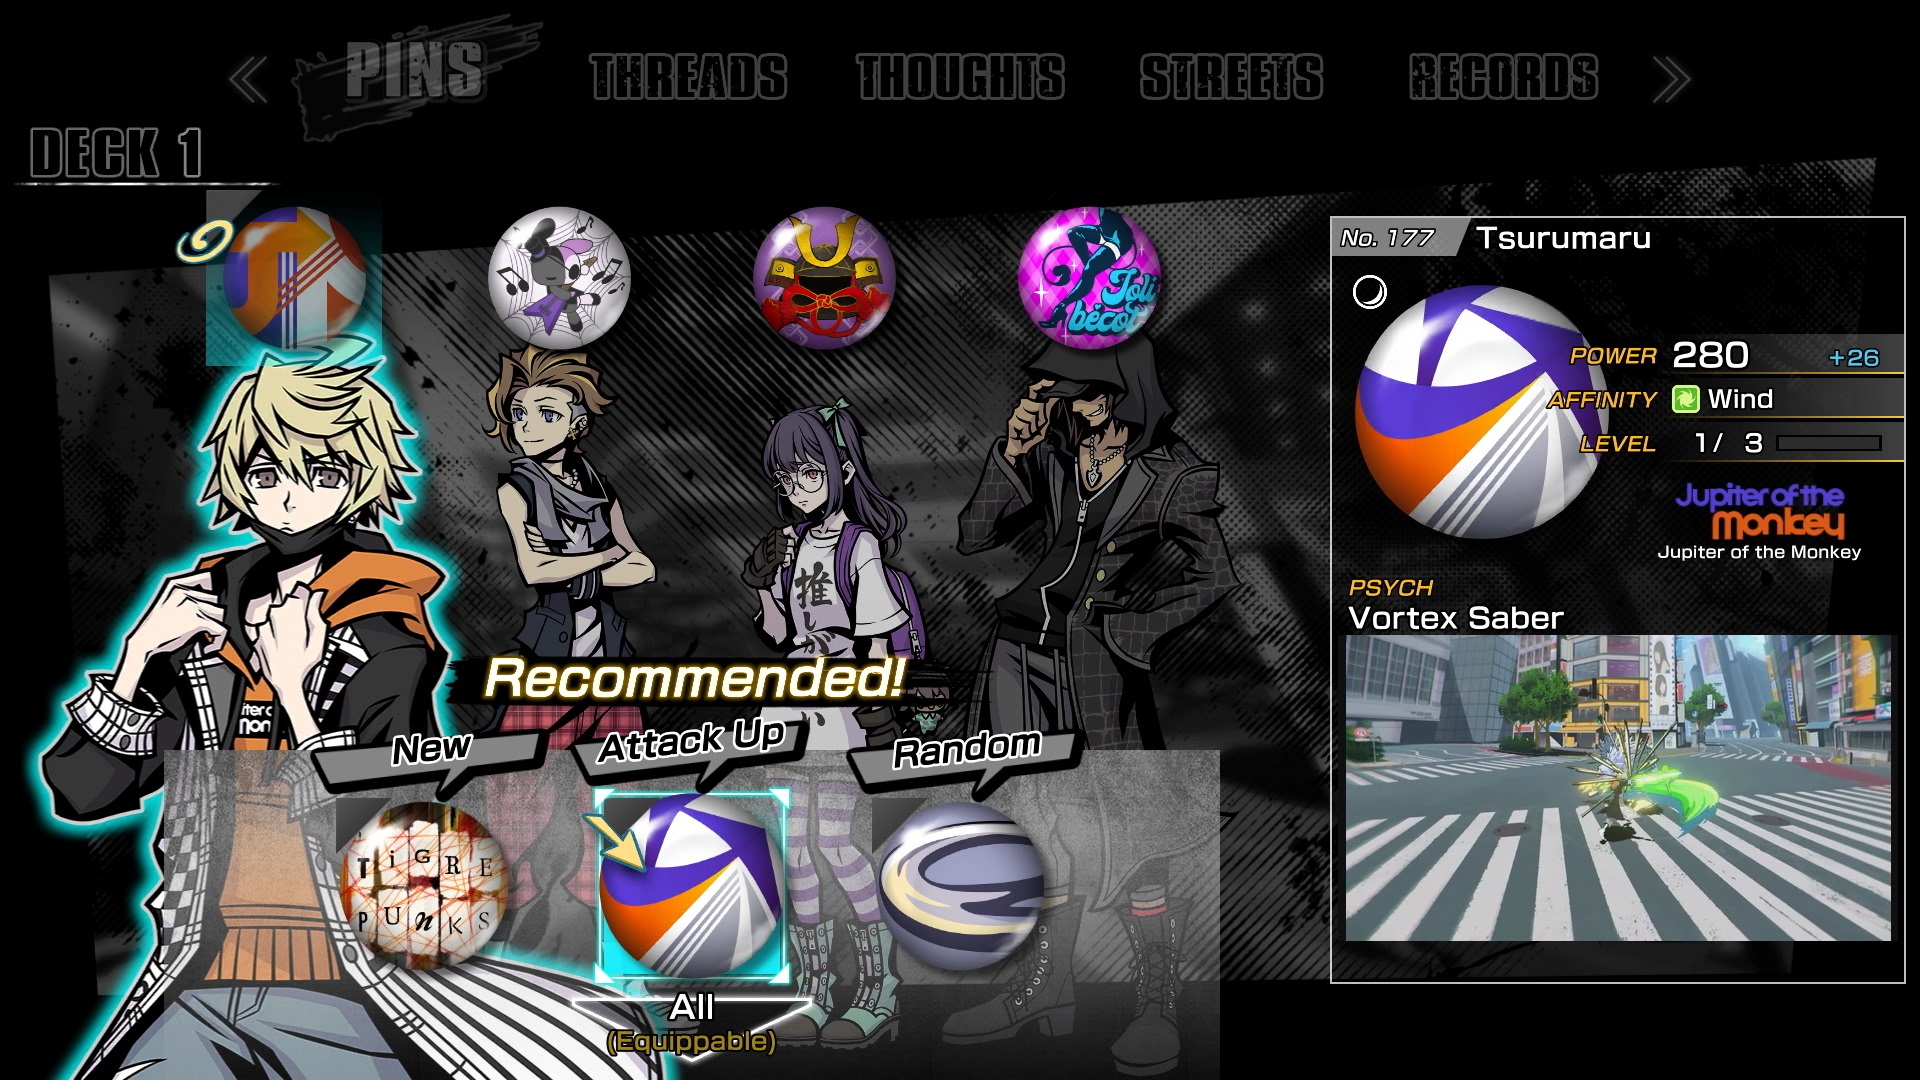 Character stats - NEO: The World Ends With You